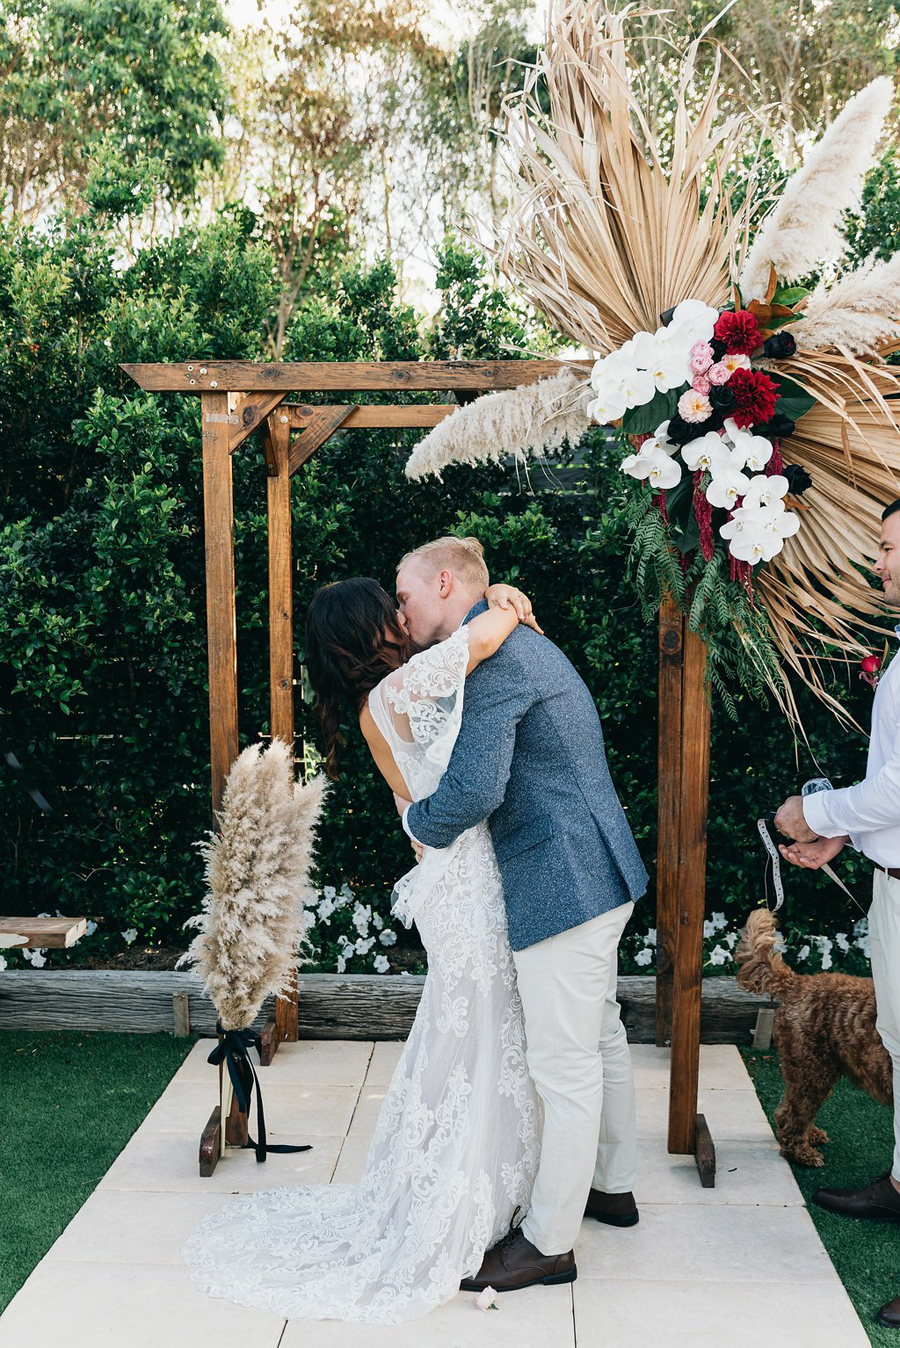 tweed-coast-weddings-wedding-venue-osteria-casuarina-garden-ceremony-reception-coastal-elyse-peter027.jpg